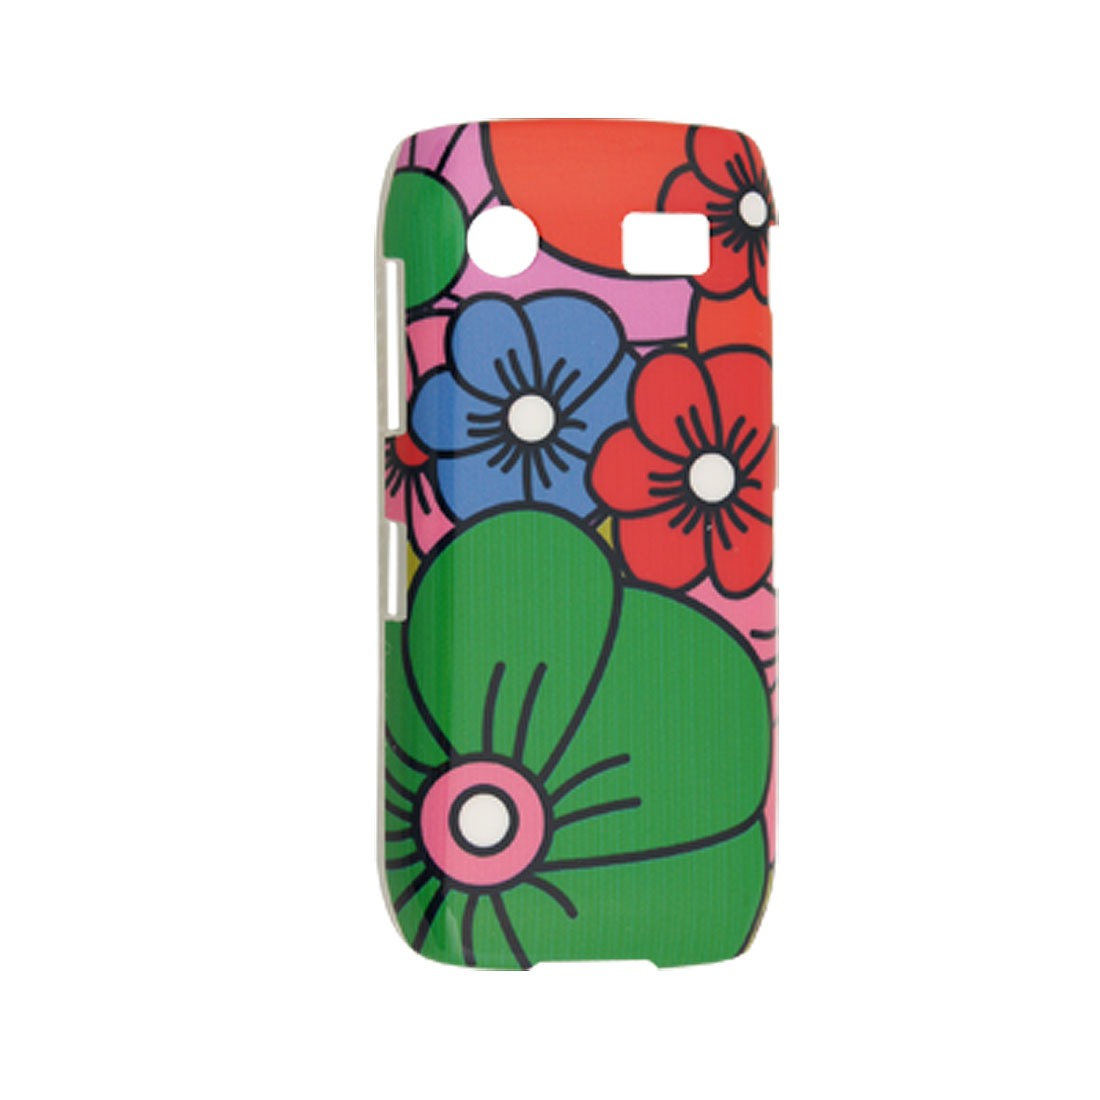 Colorful Floral Print Hard Plastic Cover for Blackberry 9100